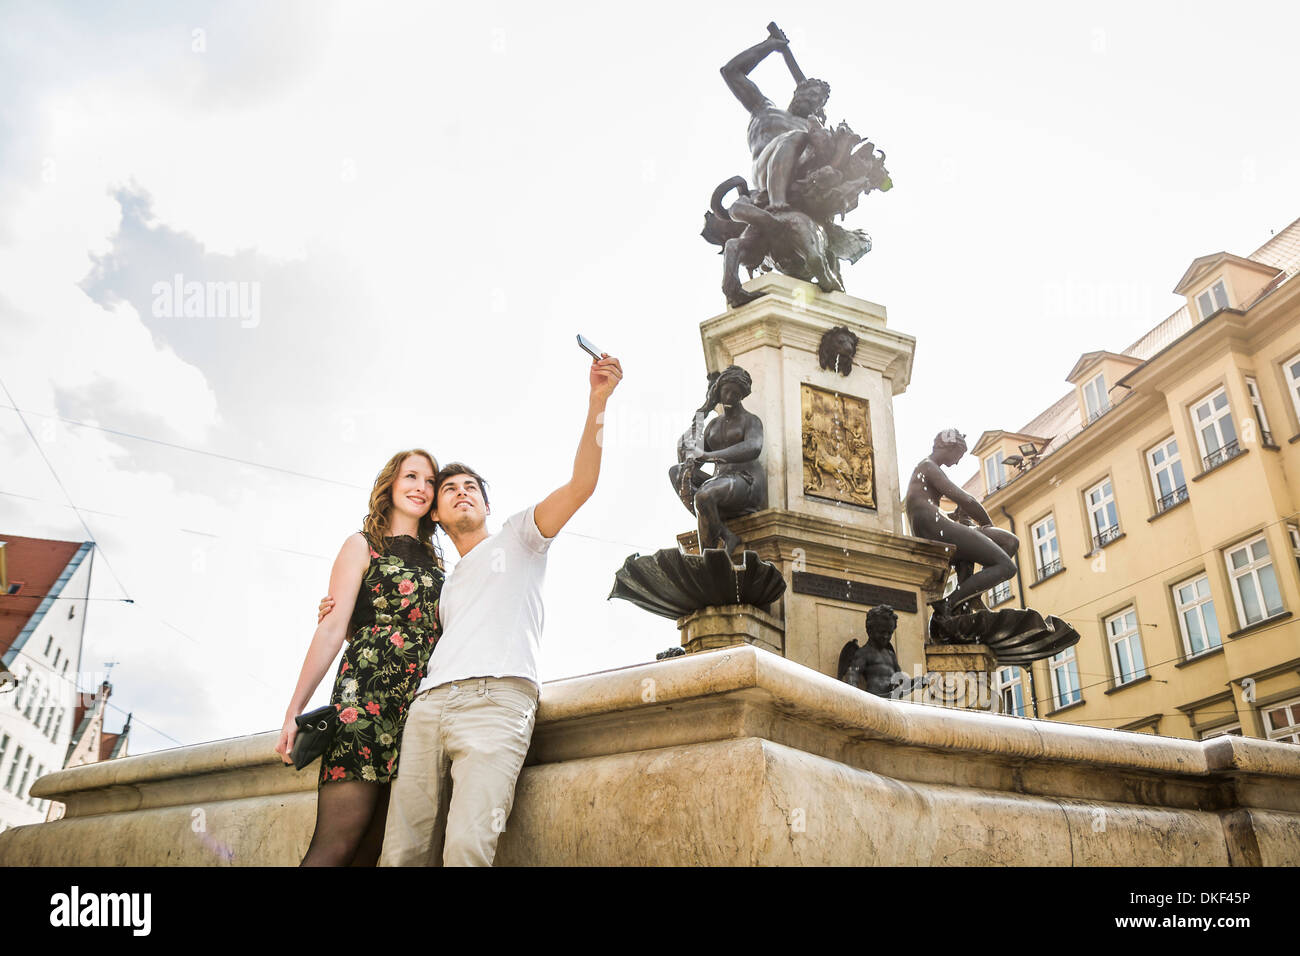 Young couple taking self portrait photograph beside statue in Augsburg, Bavaria, Germany Stock Photo